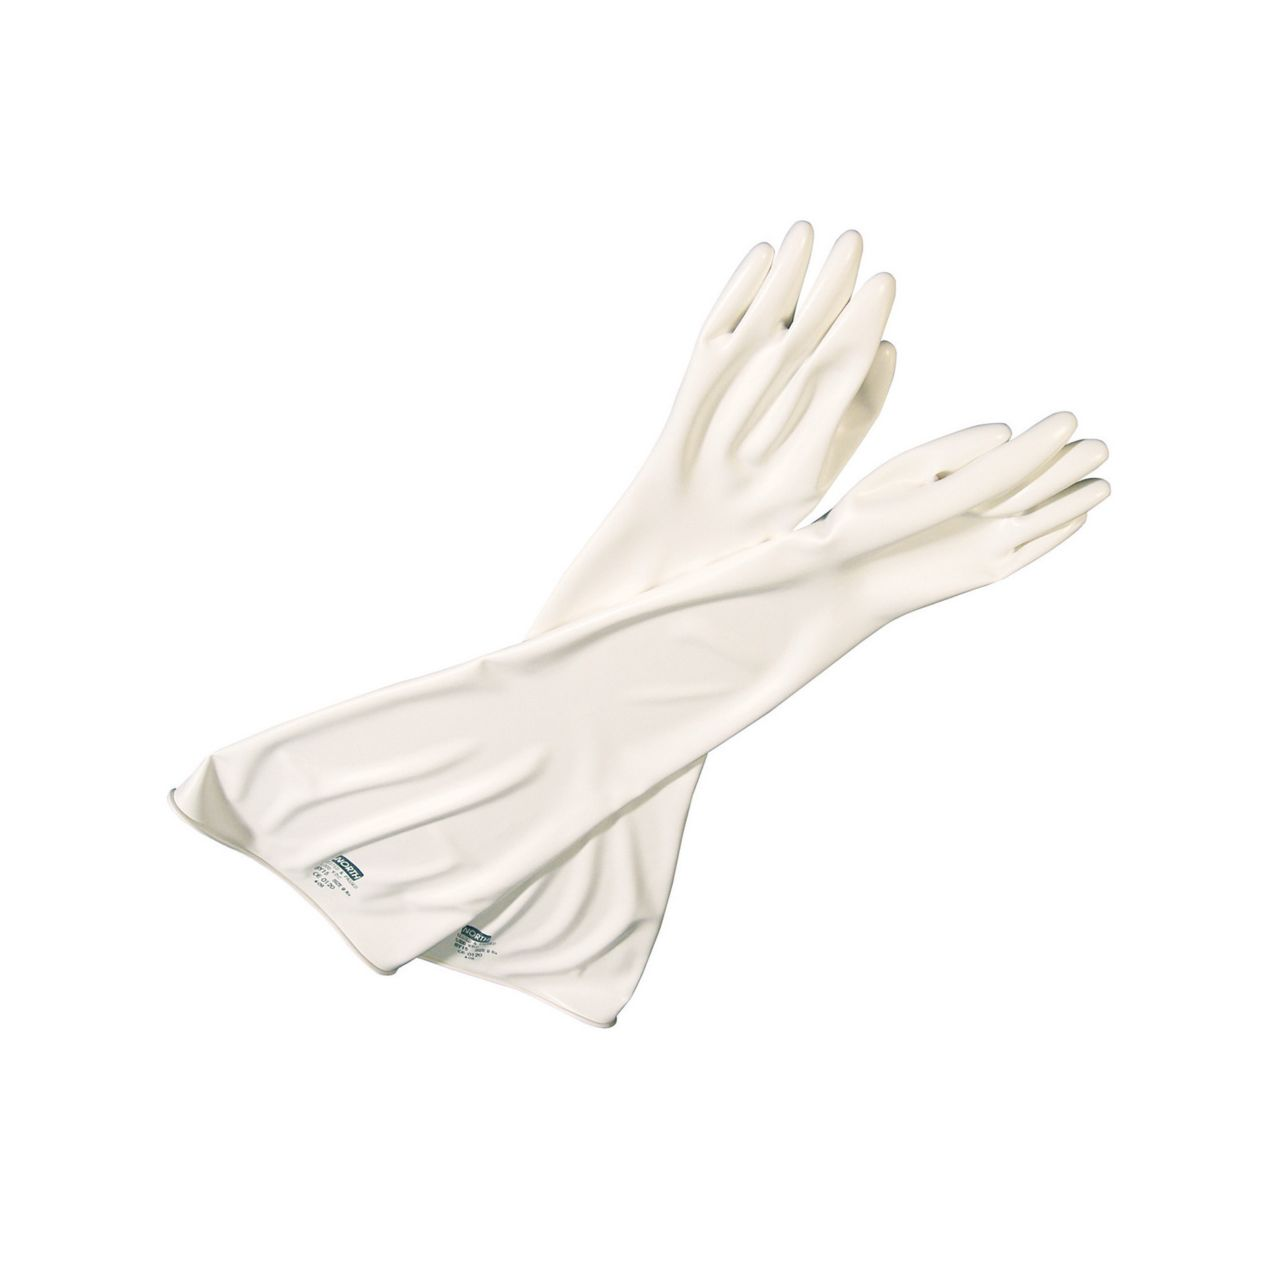 HS_csm_glovebox__gloves_-_7yly3032_8yly3032 8yly3032a 7yly3032 7yly3032a 5yly3032 north csm